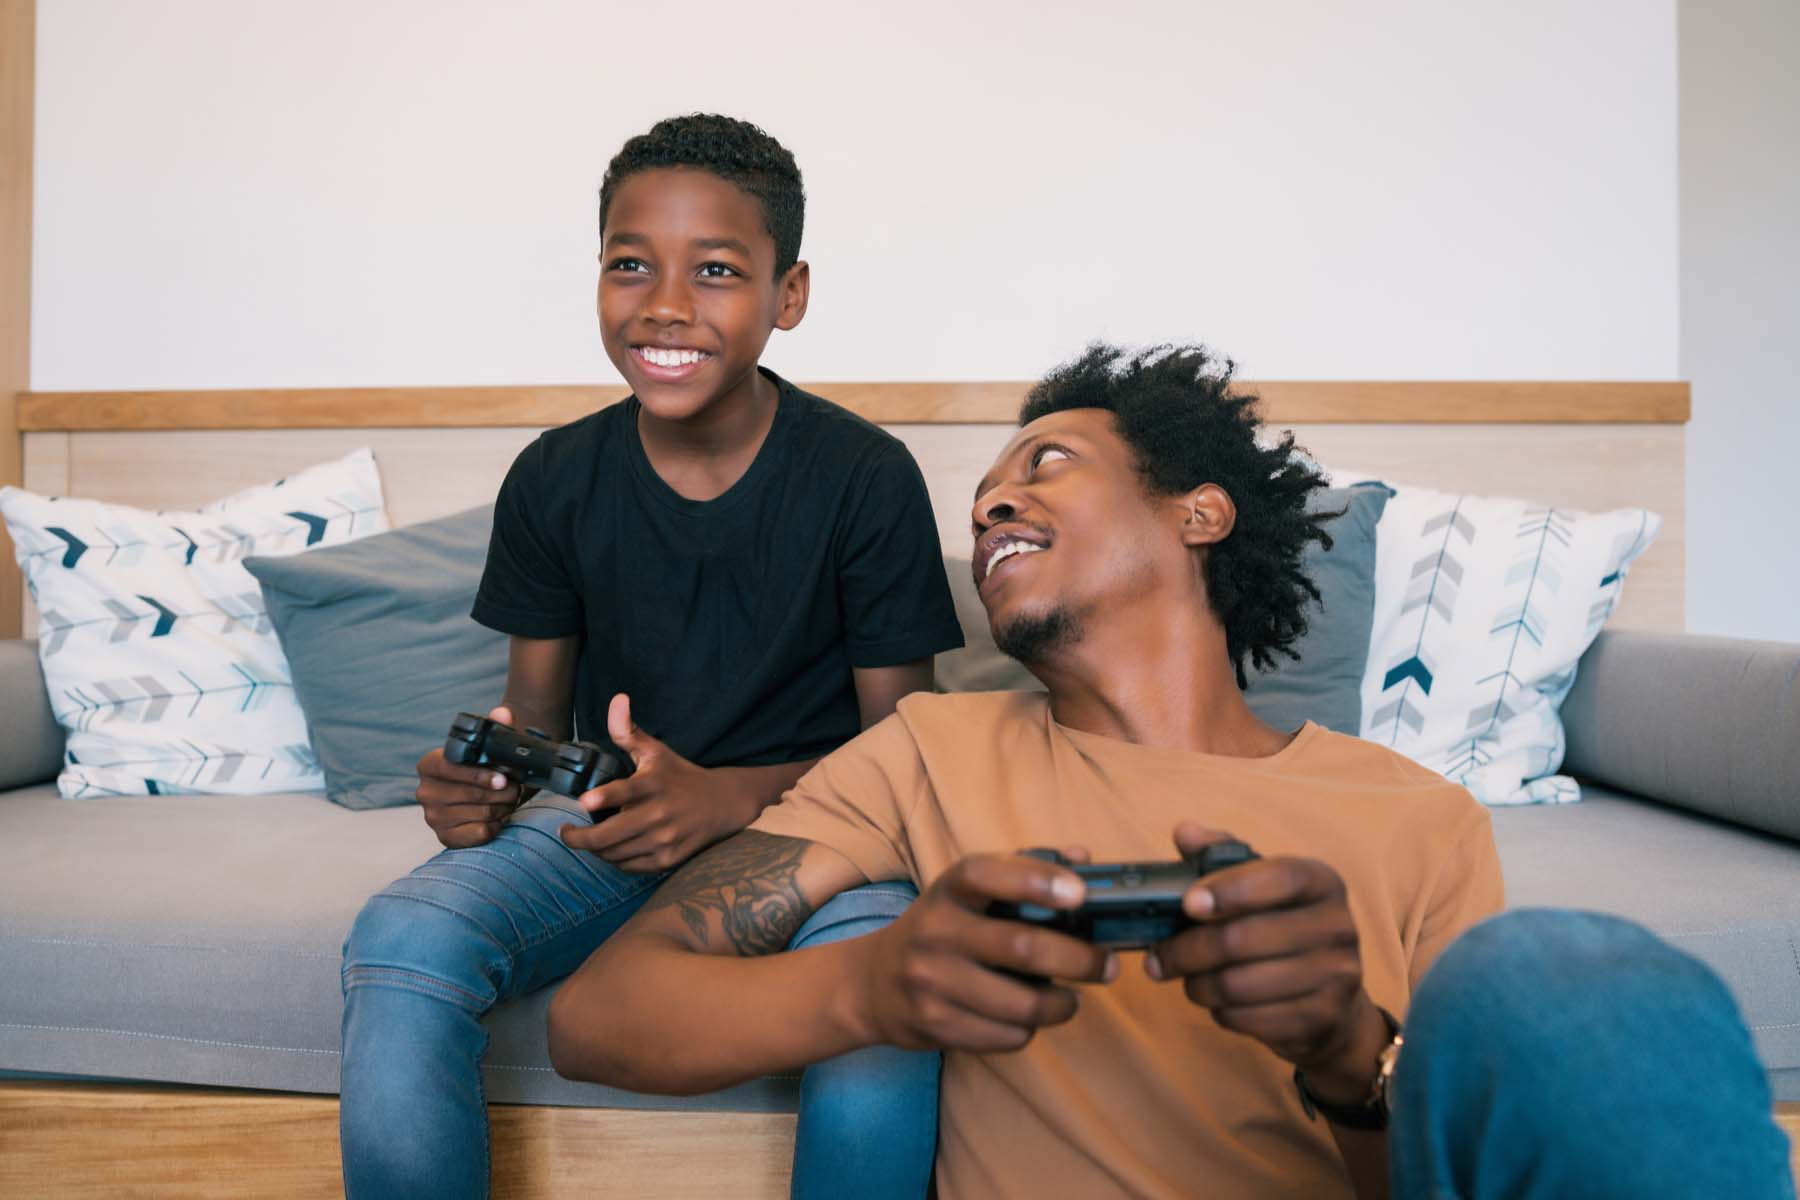 dad son playing video games